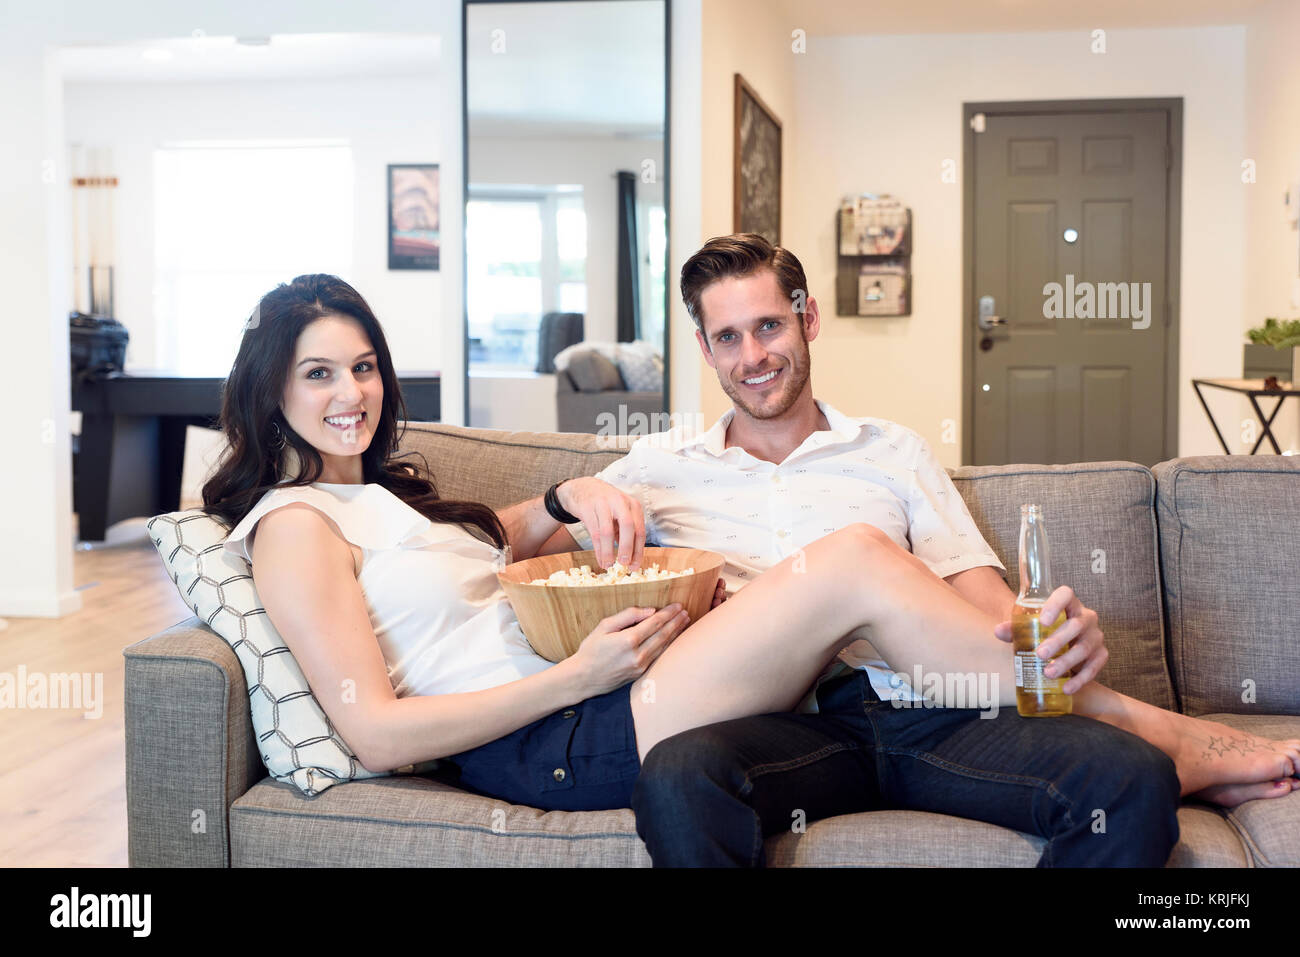 Smiling Caucasian couple relaxing on sofa with beer and popcorn - Stock Image